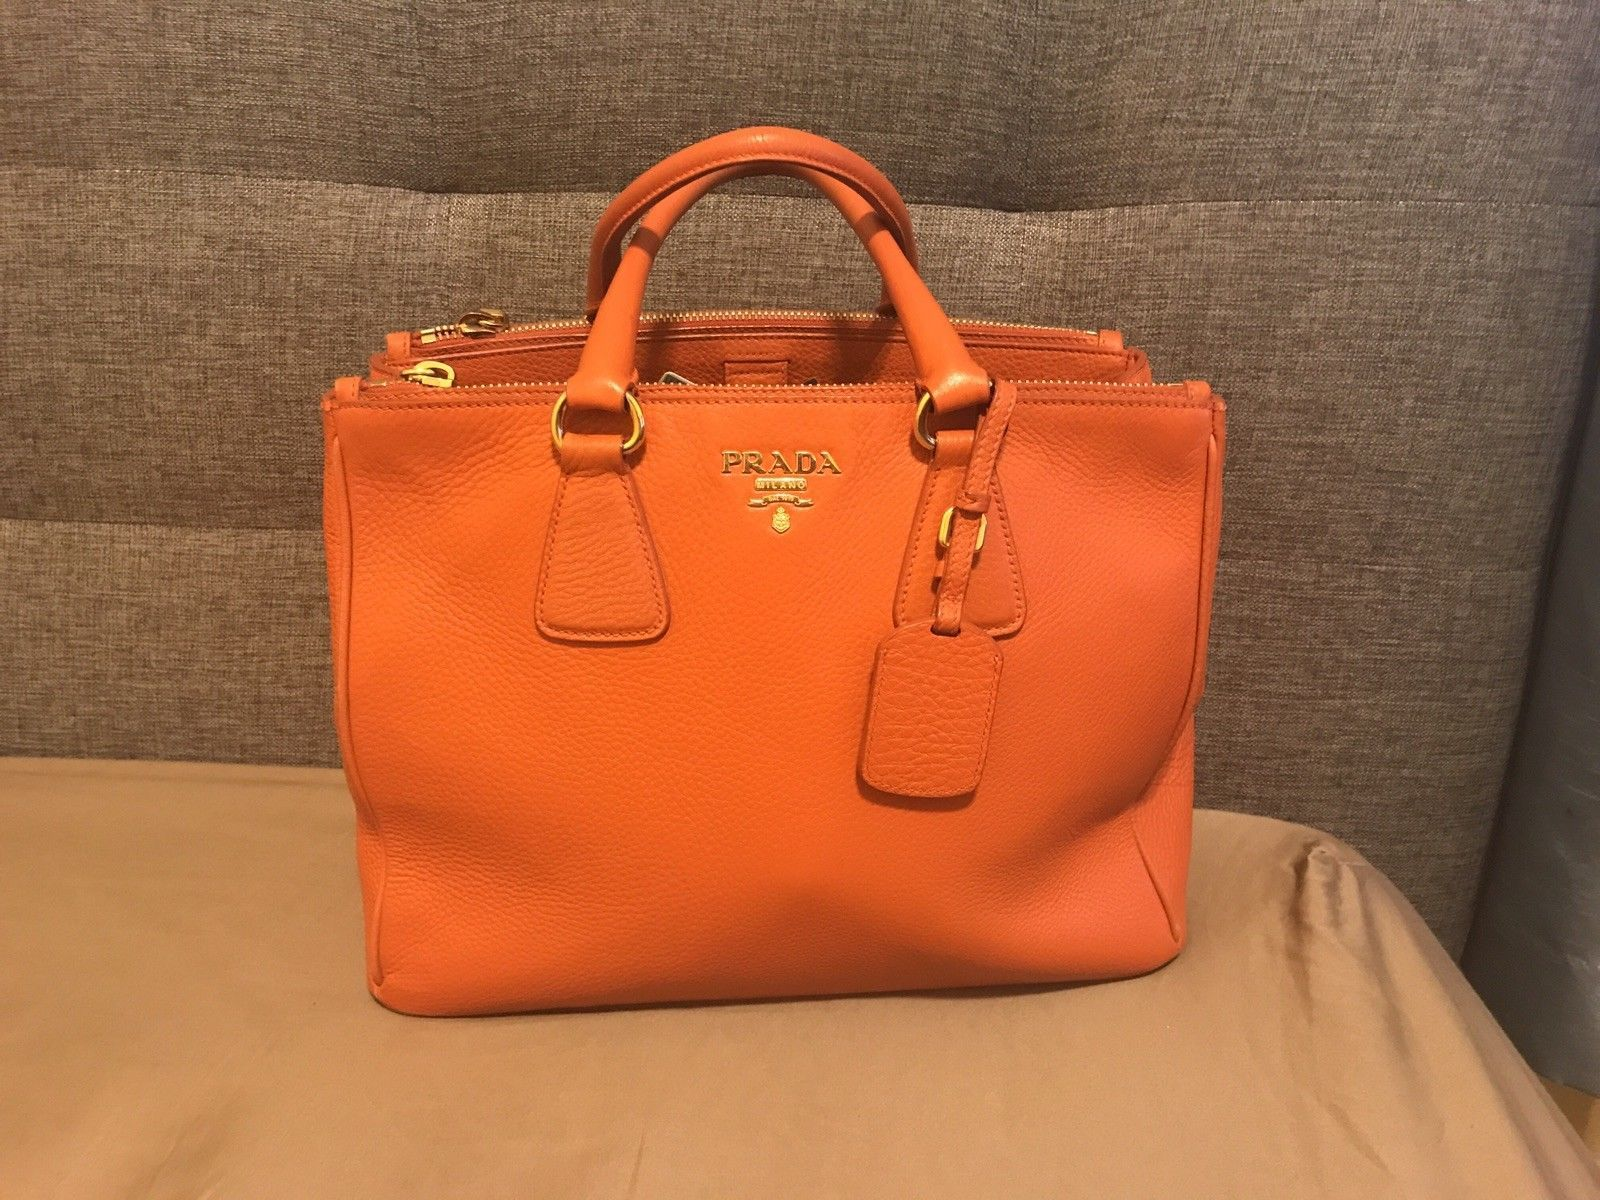 2bd4b85b32 Prada Saffiano Leather Lux Large Tote bag handbag ORANGE  1200.0 ...